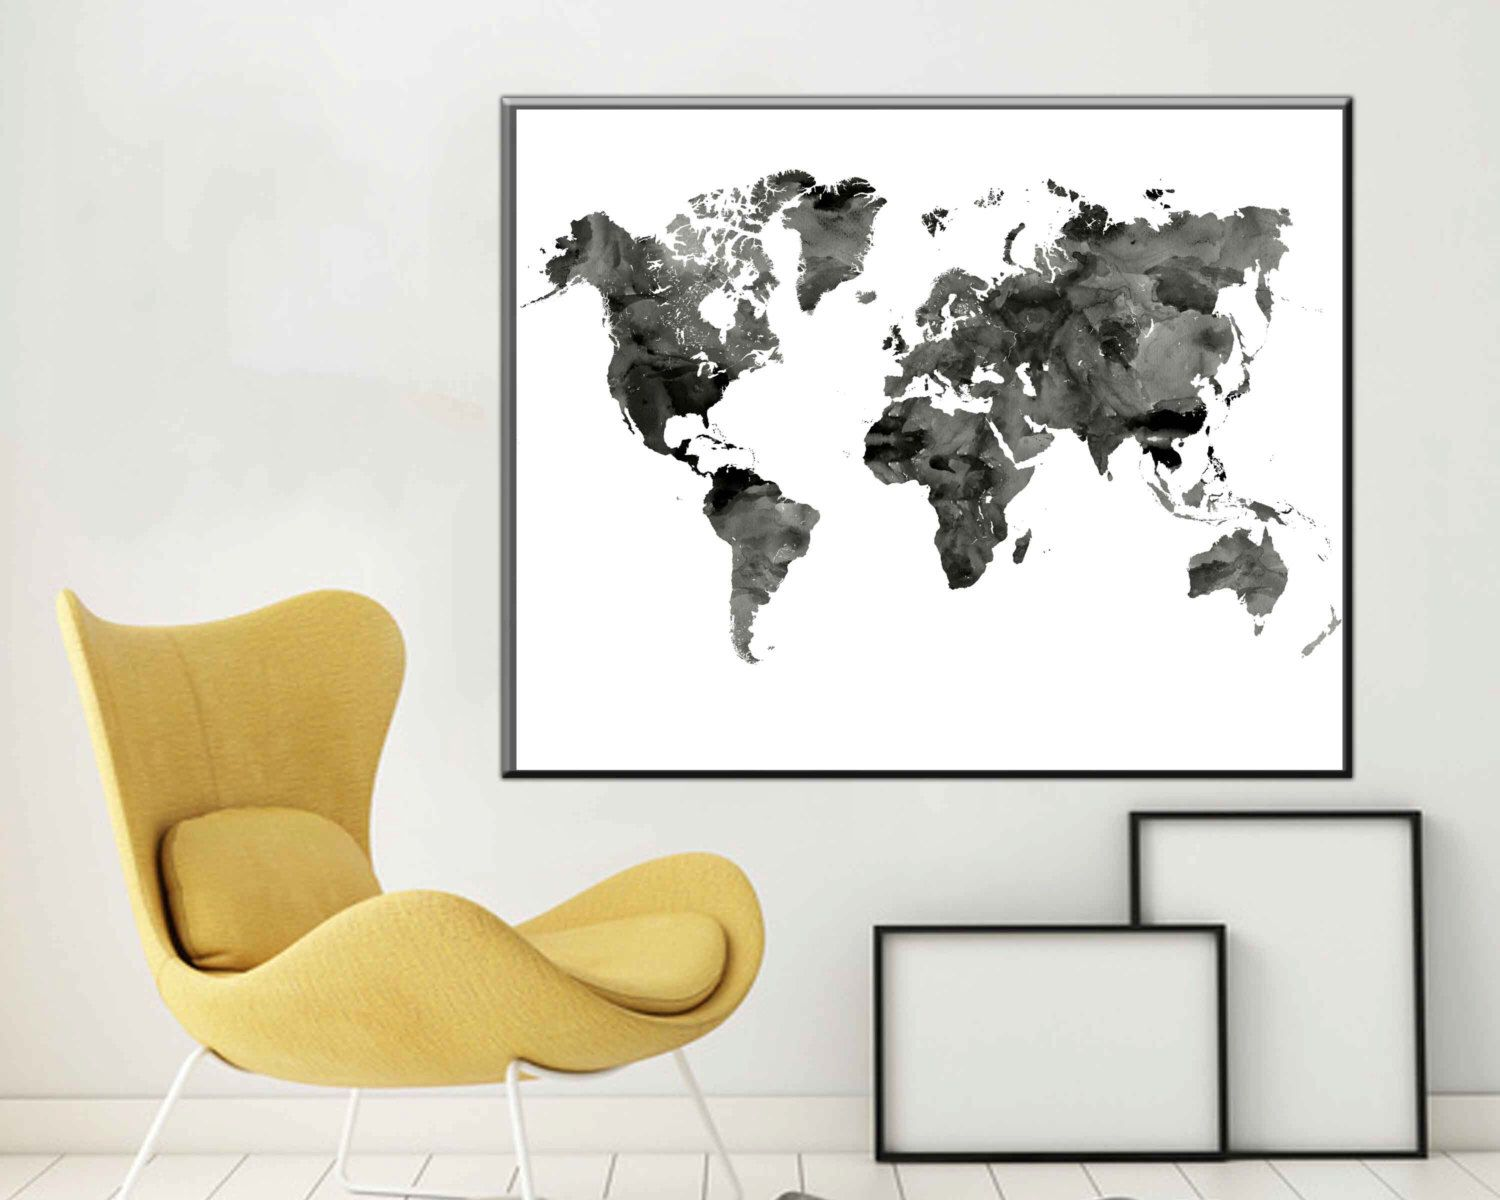 Black and white world map monochrome art world map art world map black and white world map monochrome art world map art world map wall art black and gumiabroncs Gallery